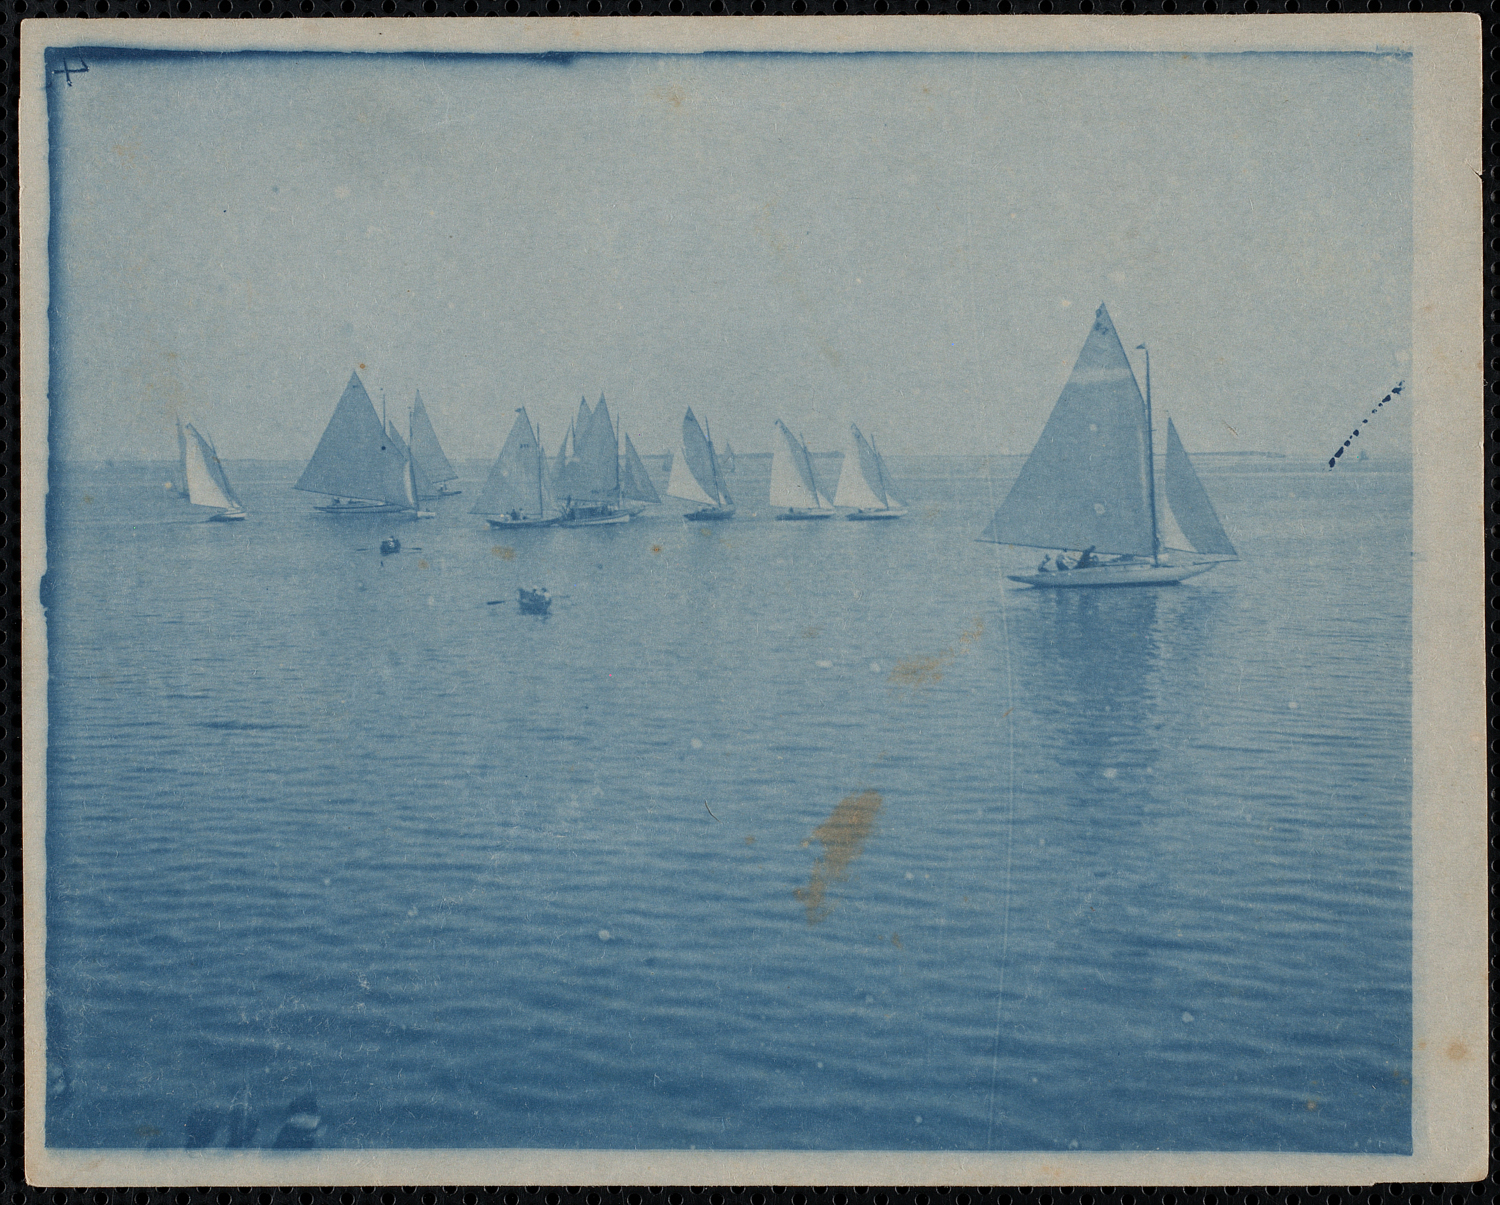 Regatta on Kingston Bay, circa 1905